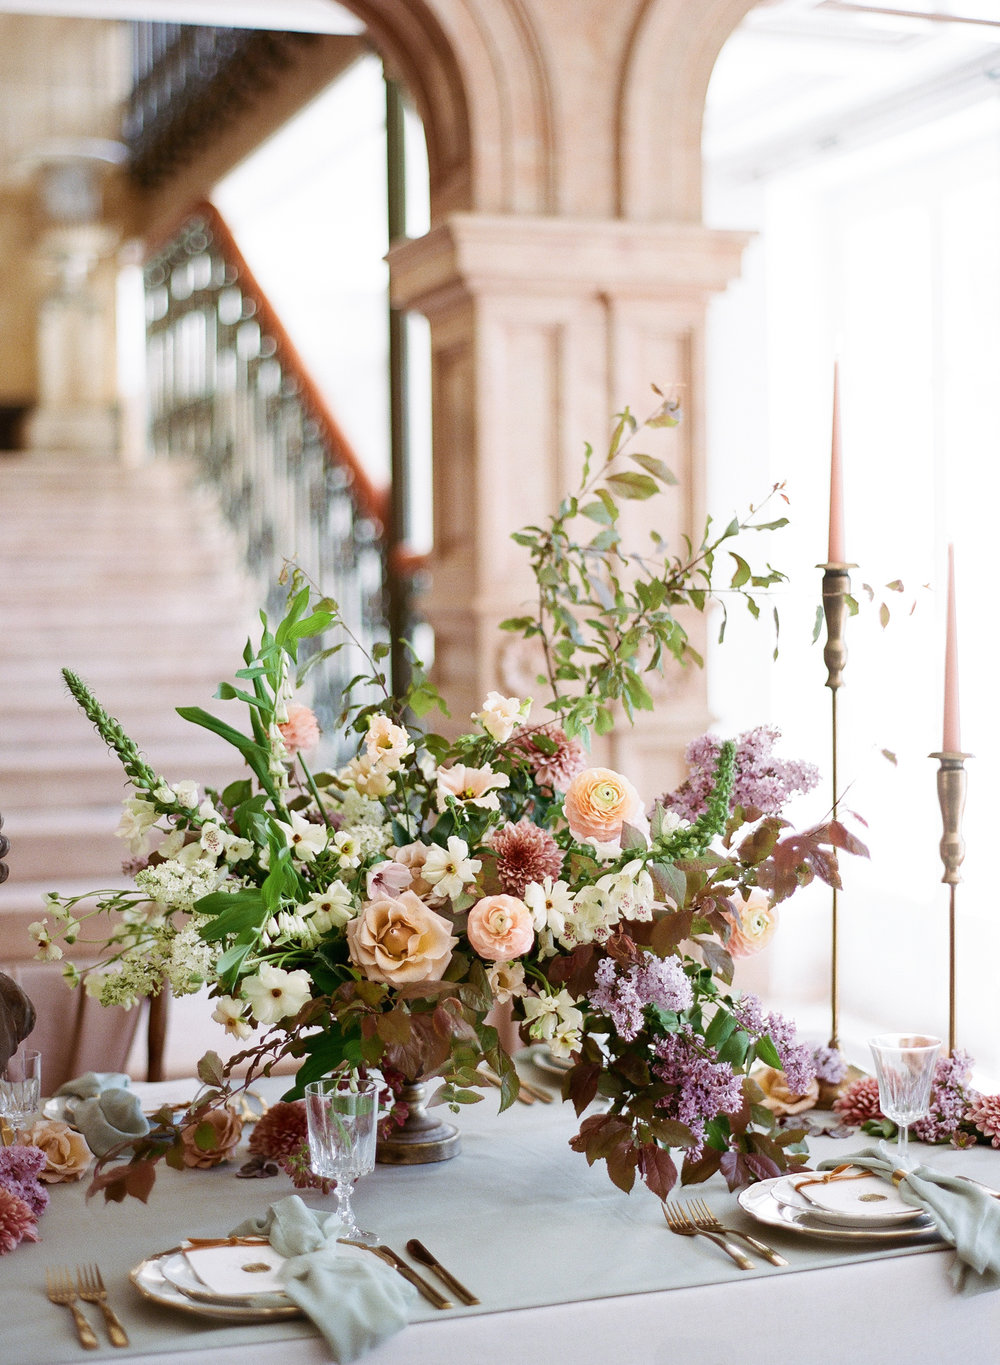 A sprawling bouquet of lavender, blush, and cream florals decorates a wedding reception table; Sylvie Gil Photography